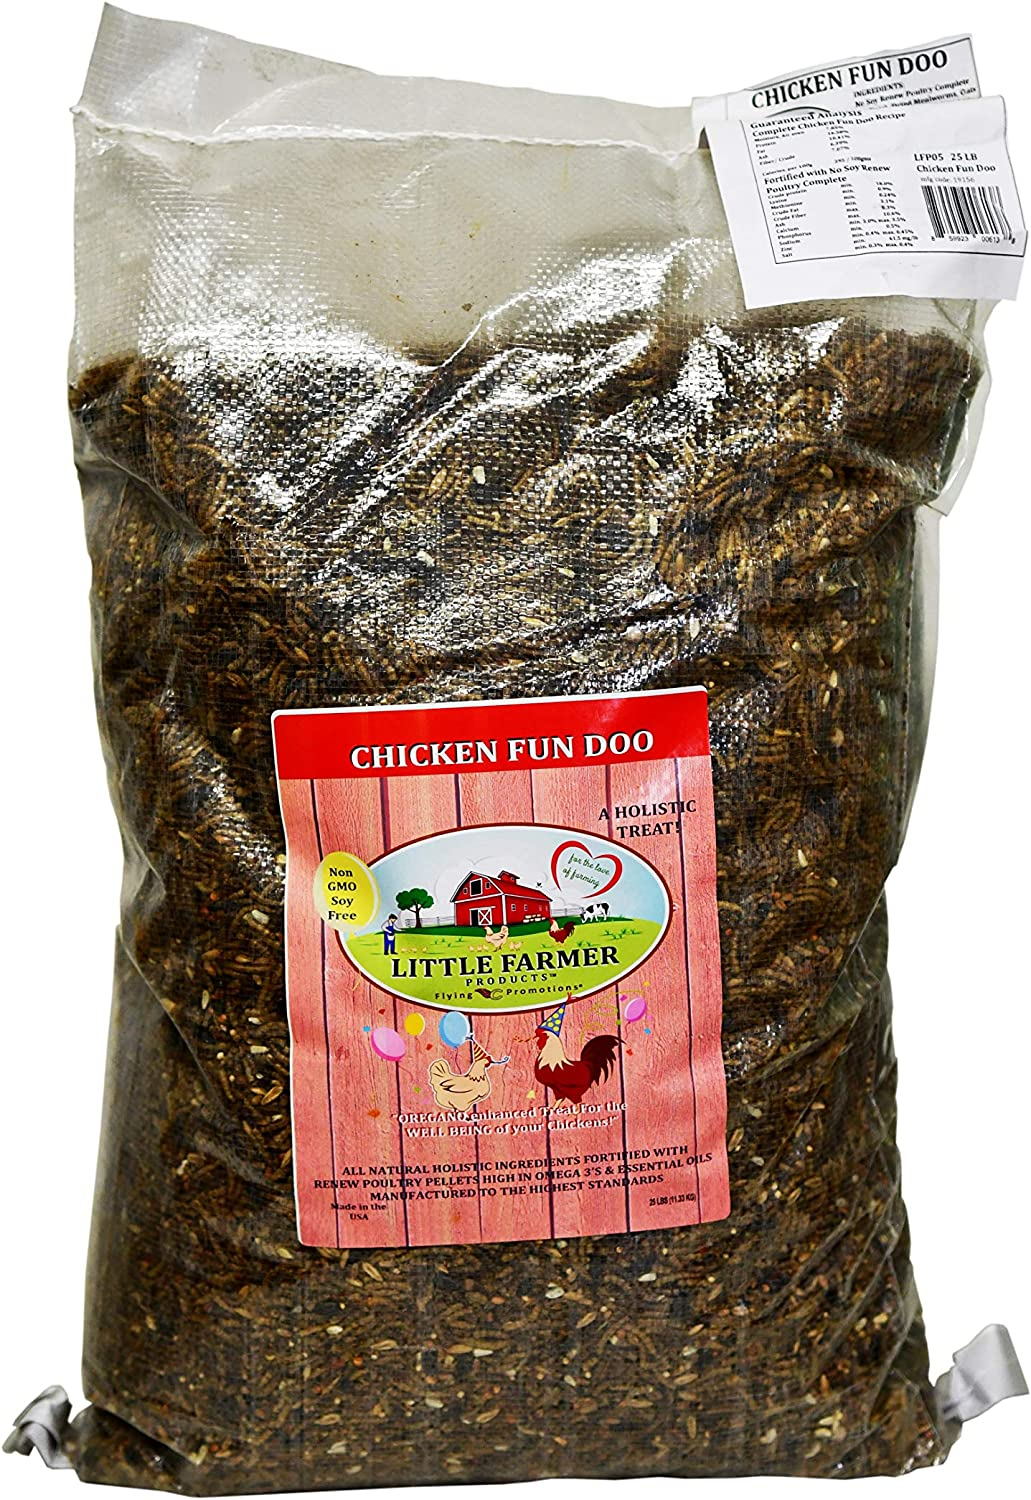 LITTLE FARMER PRODUCTS Chicken Fun-DOO Non-GMO, Soy-Free Chicken Treat | Premium Poultry Meal Worm, Vegetable & Herb Mix (25lbs)…